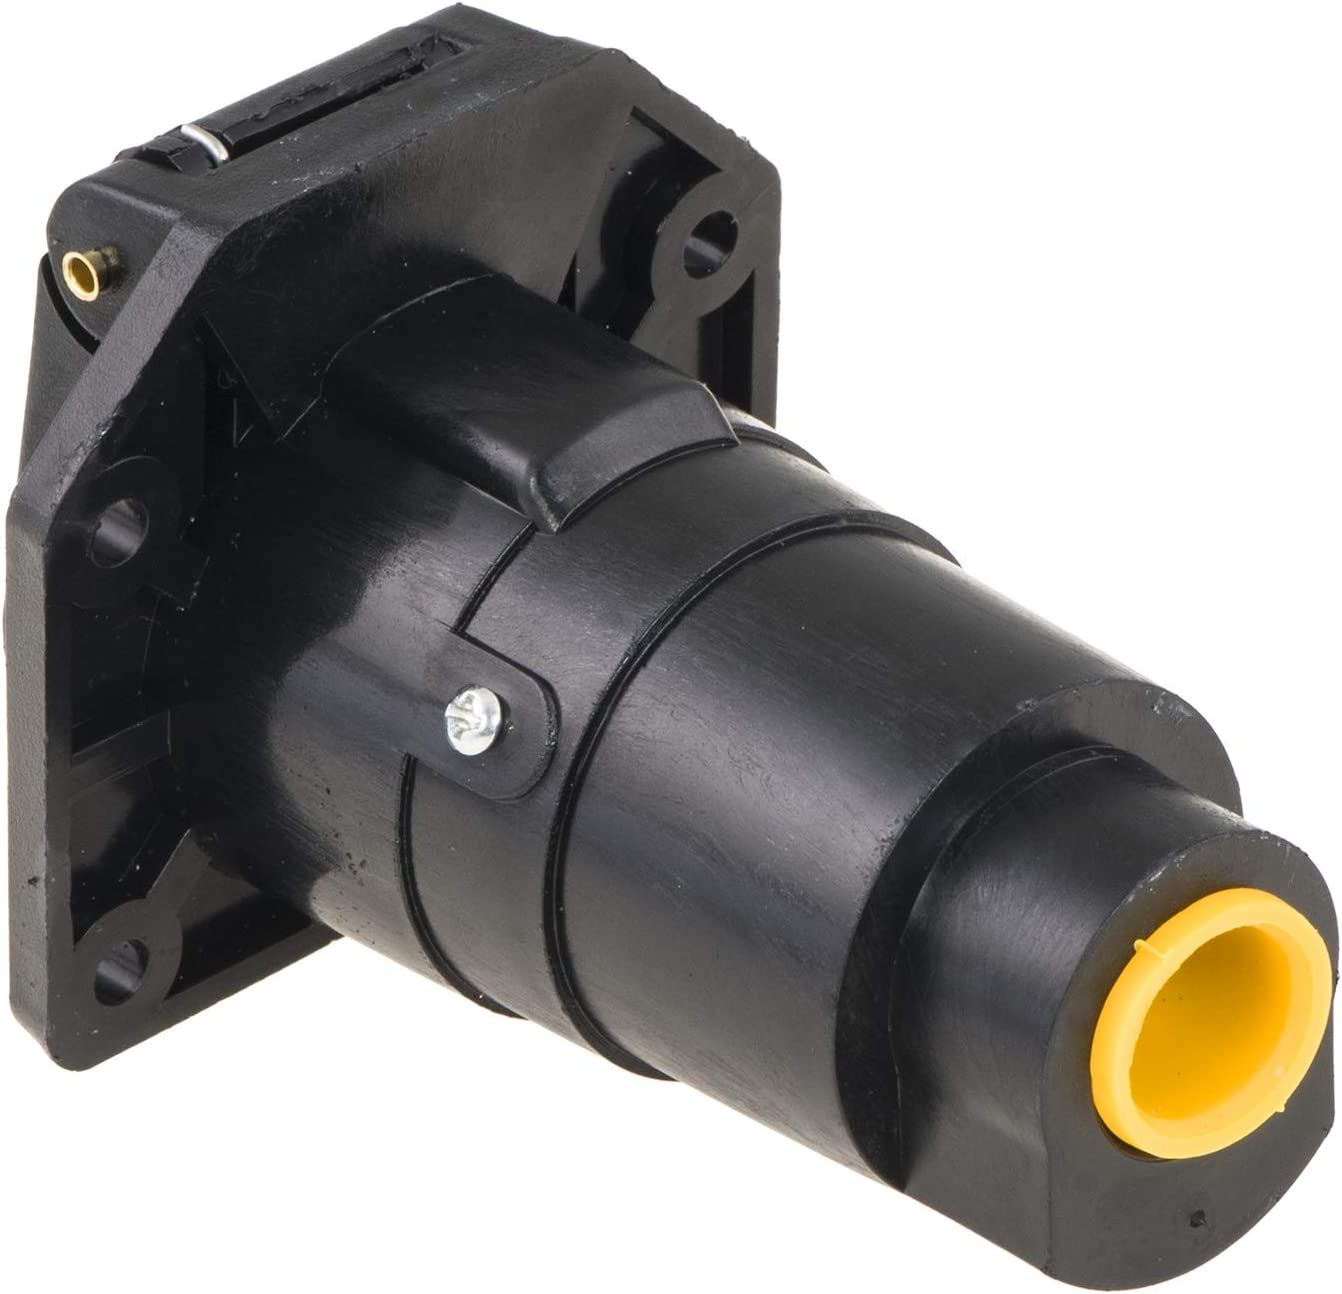 valonic 7 Way Blade Connector Socket for Vehicle Spring-Loaded dust Cover Weatherproof Wiring Harness Connector Truck